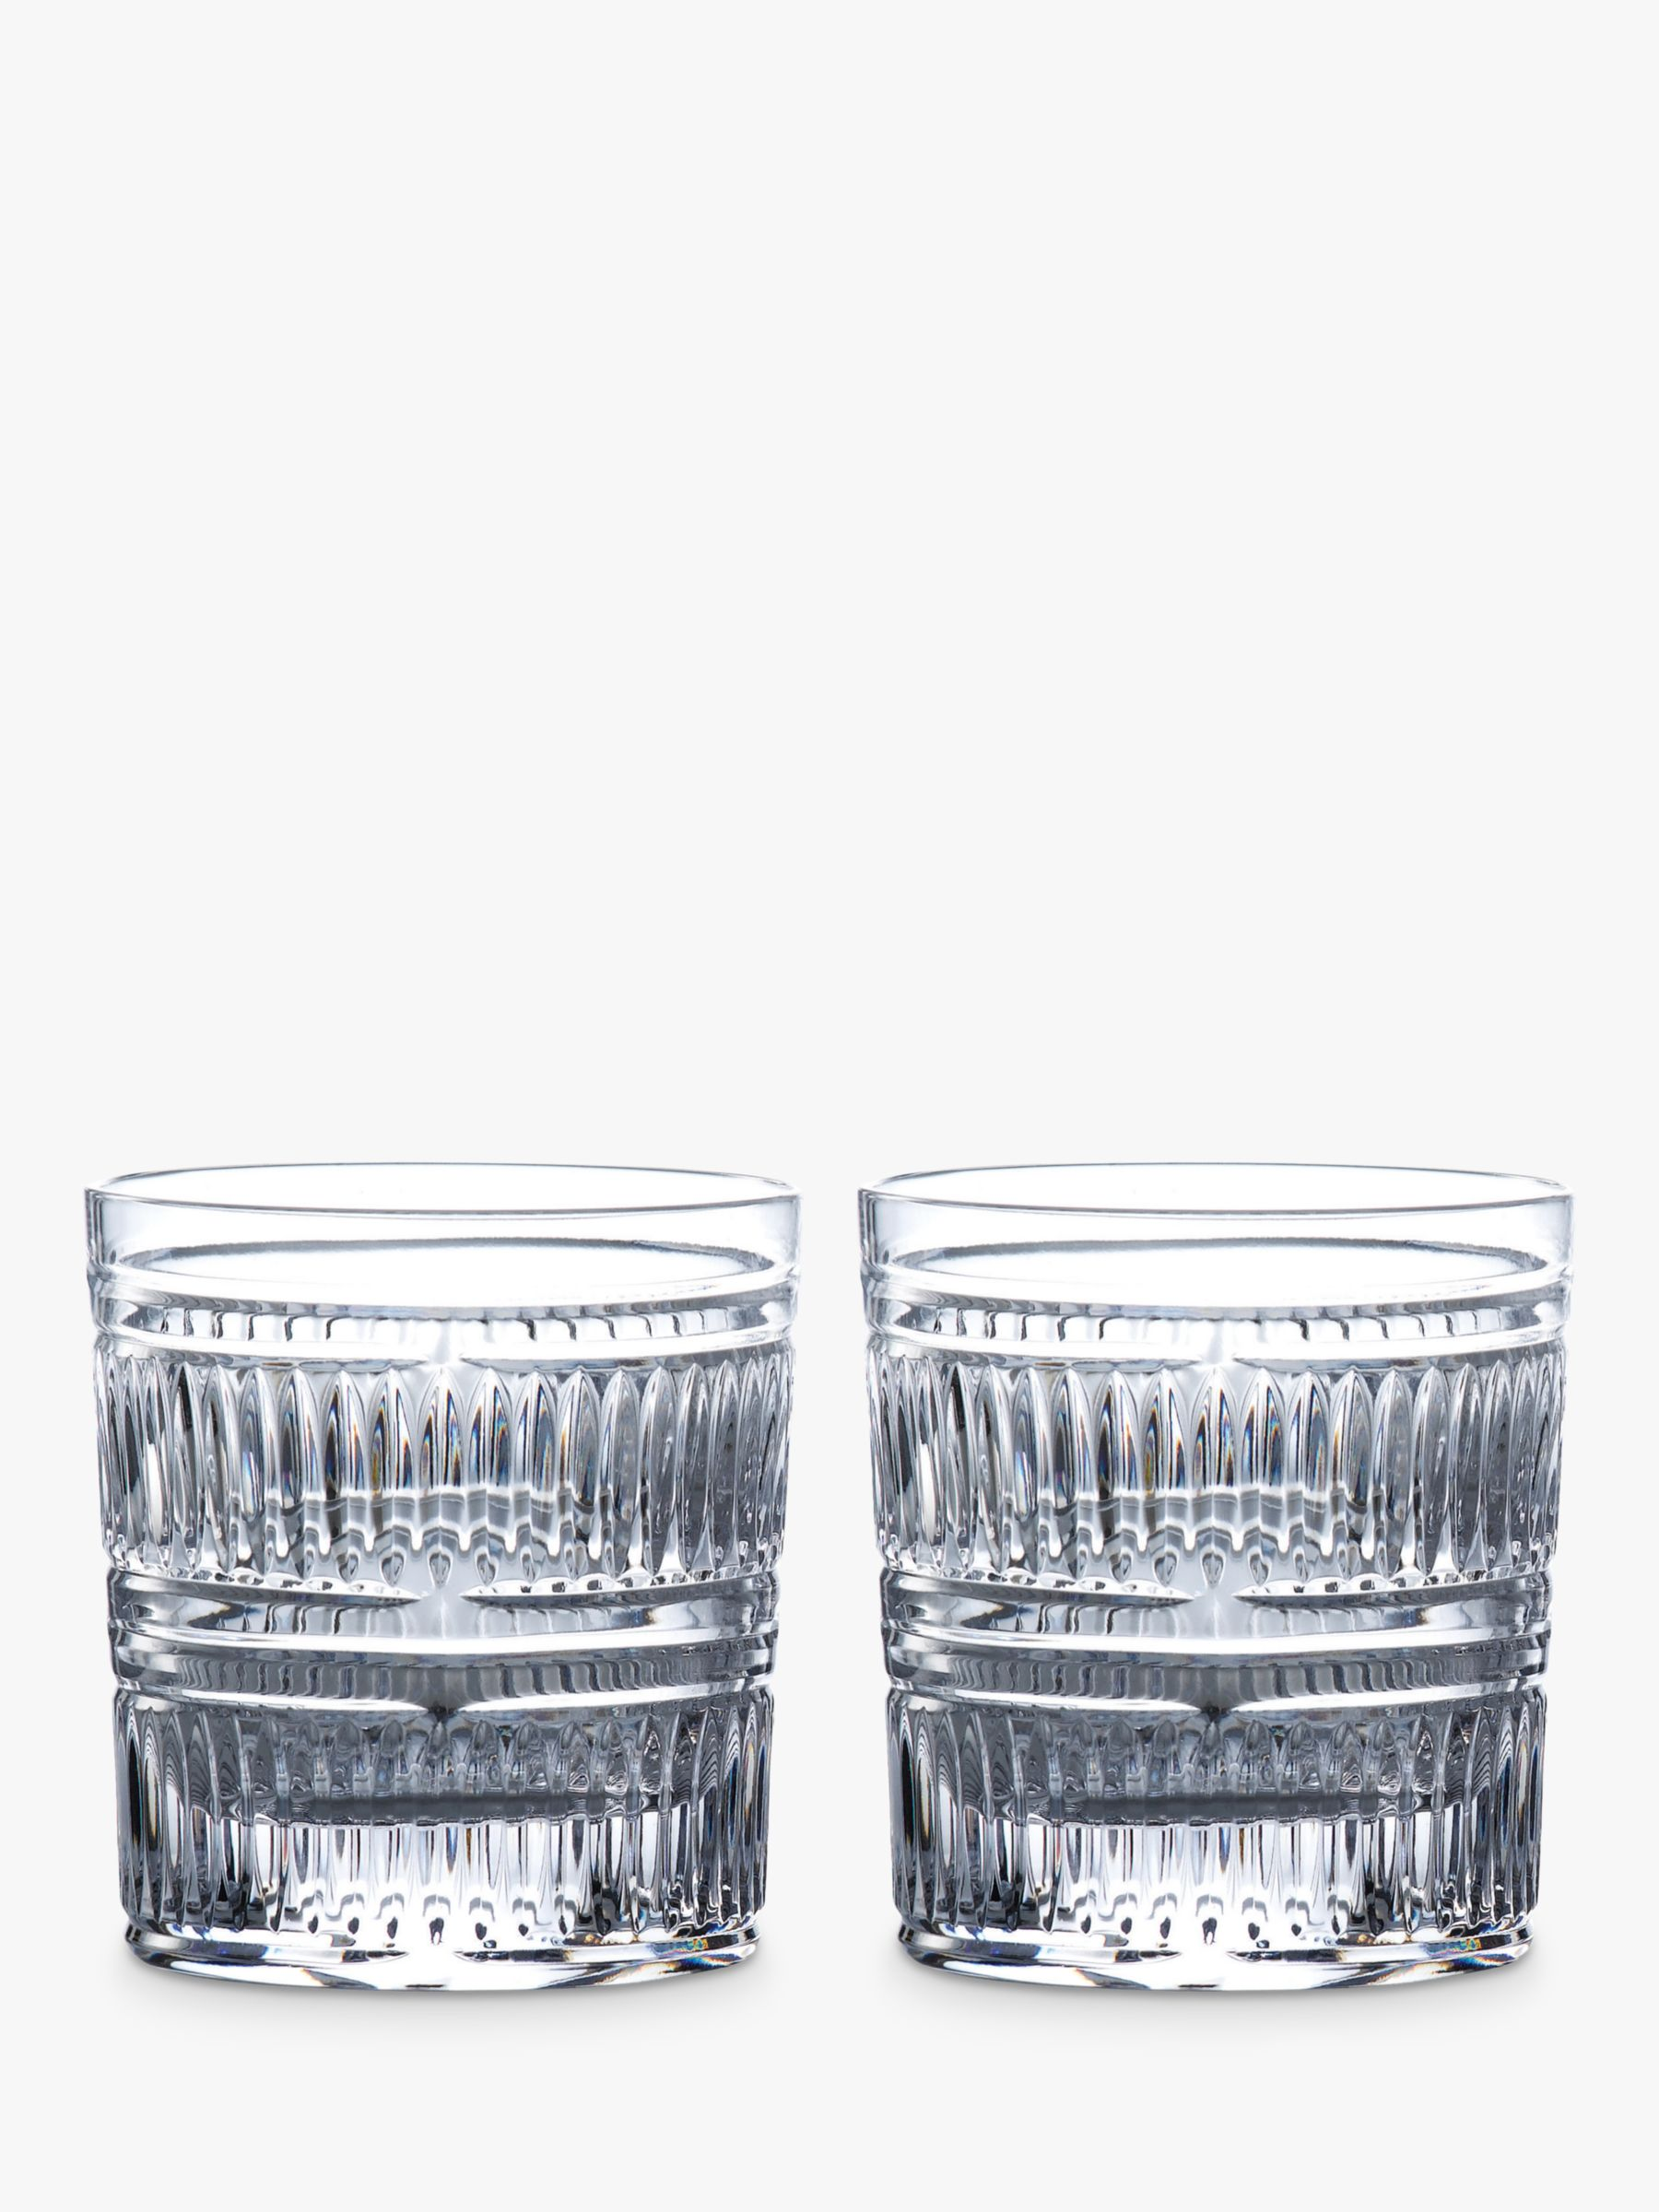 Royal Doulton Royal Doulton R&D Collection Radial Crystal Cut Glass Tumblers, 290ml, Set of 2